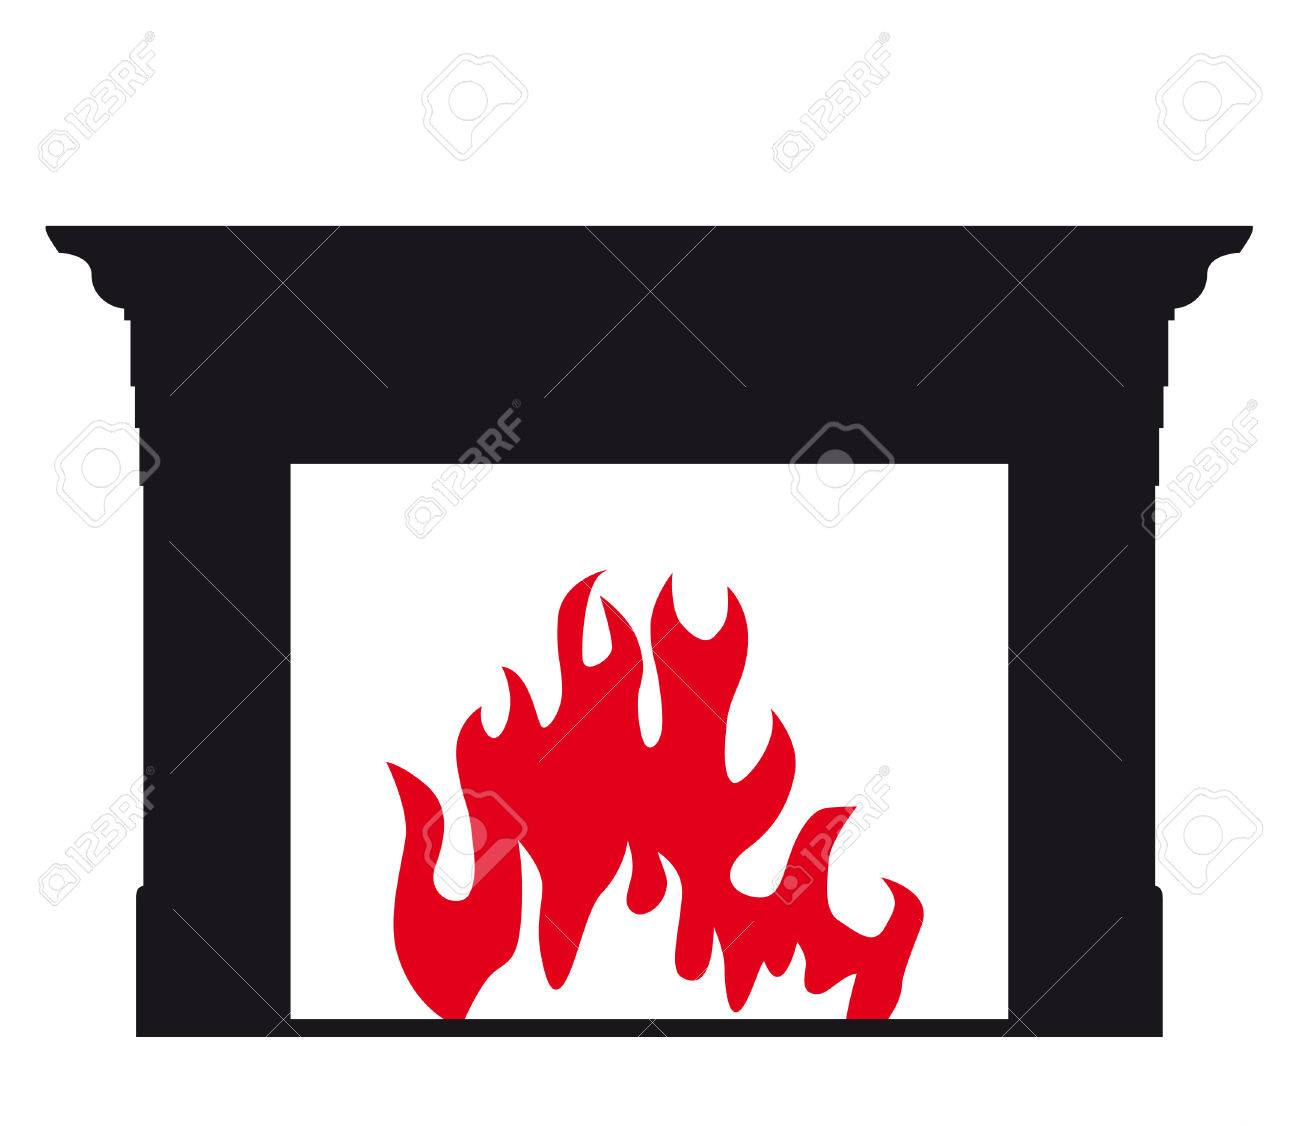 fireplace silhouette royalty free cliparts vectors and stock